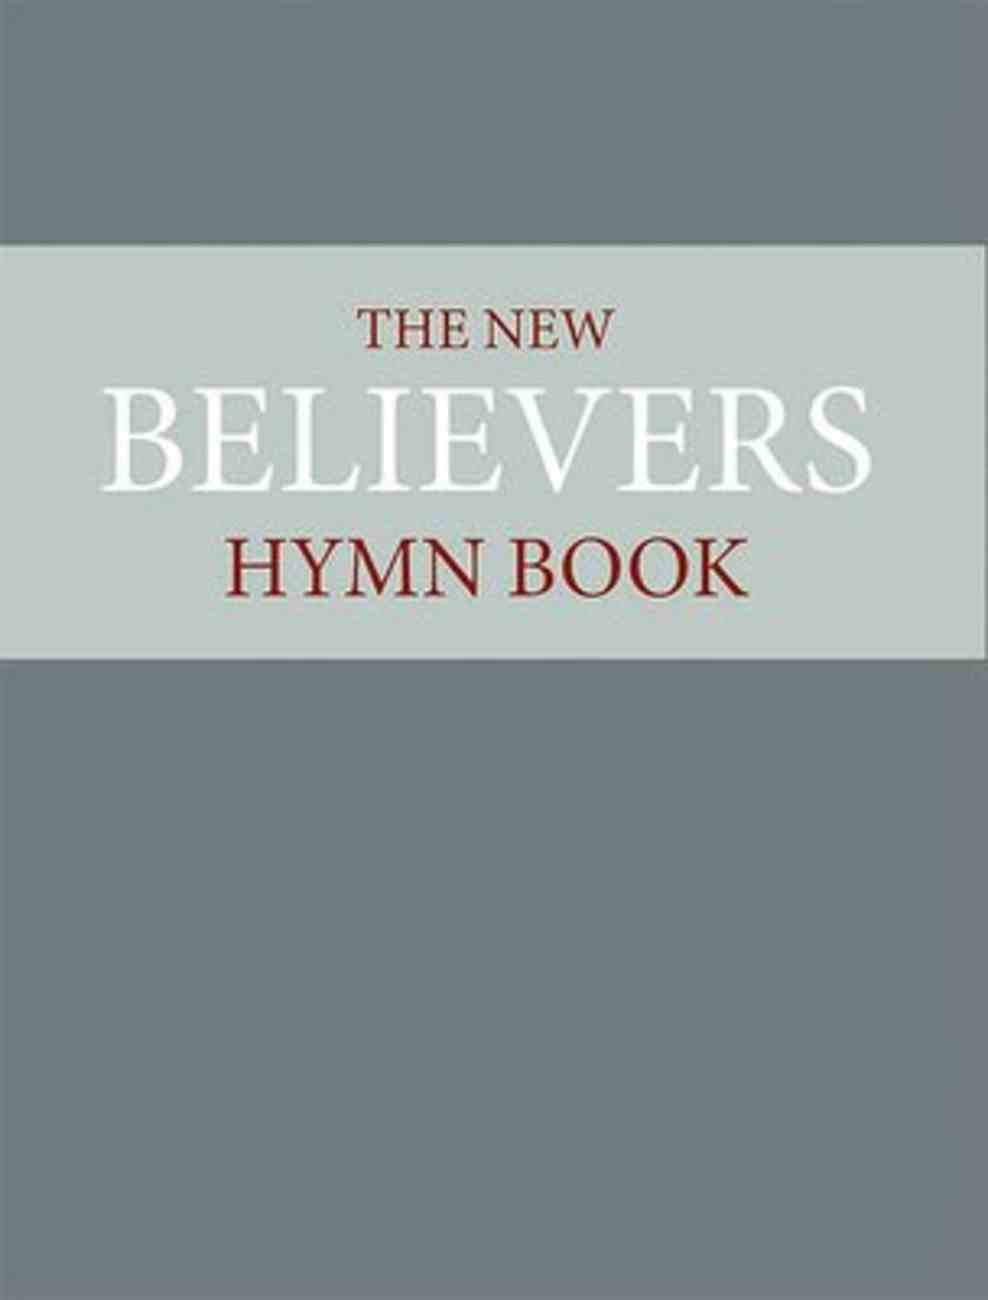 The New Believer's Hymnbook (Words Edition) Hardback